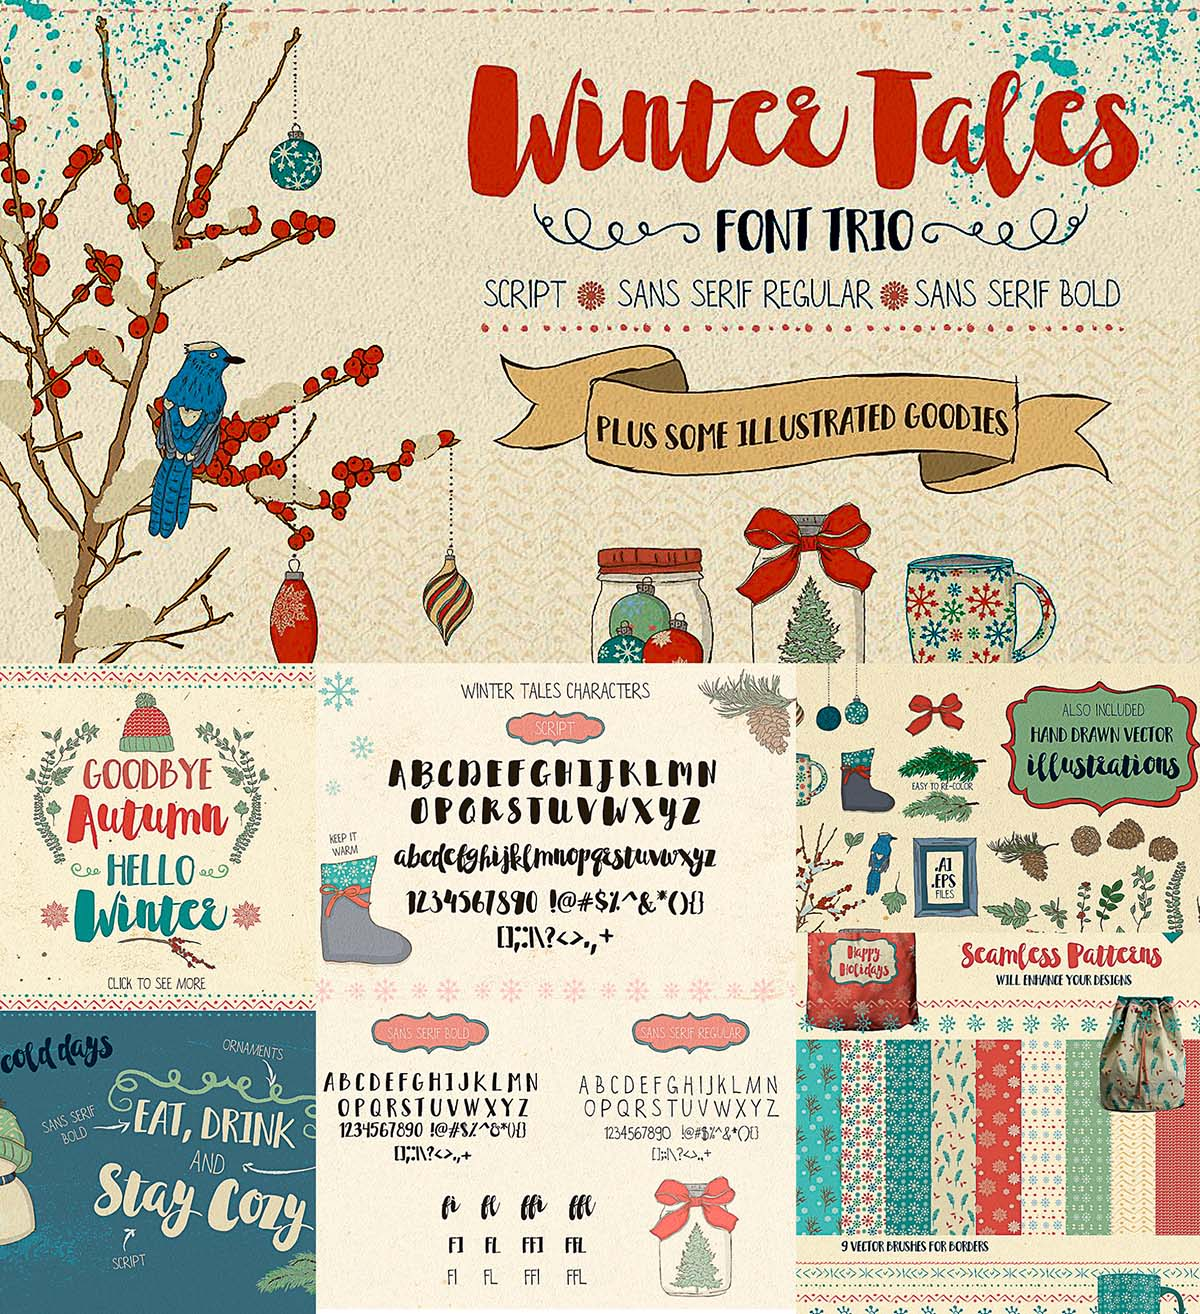 Winter tales fonts